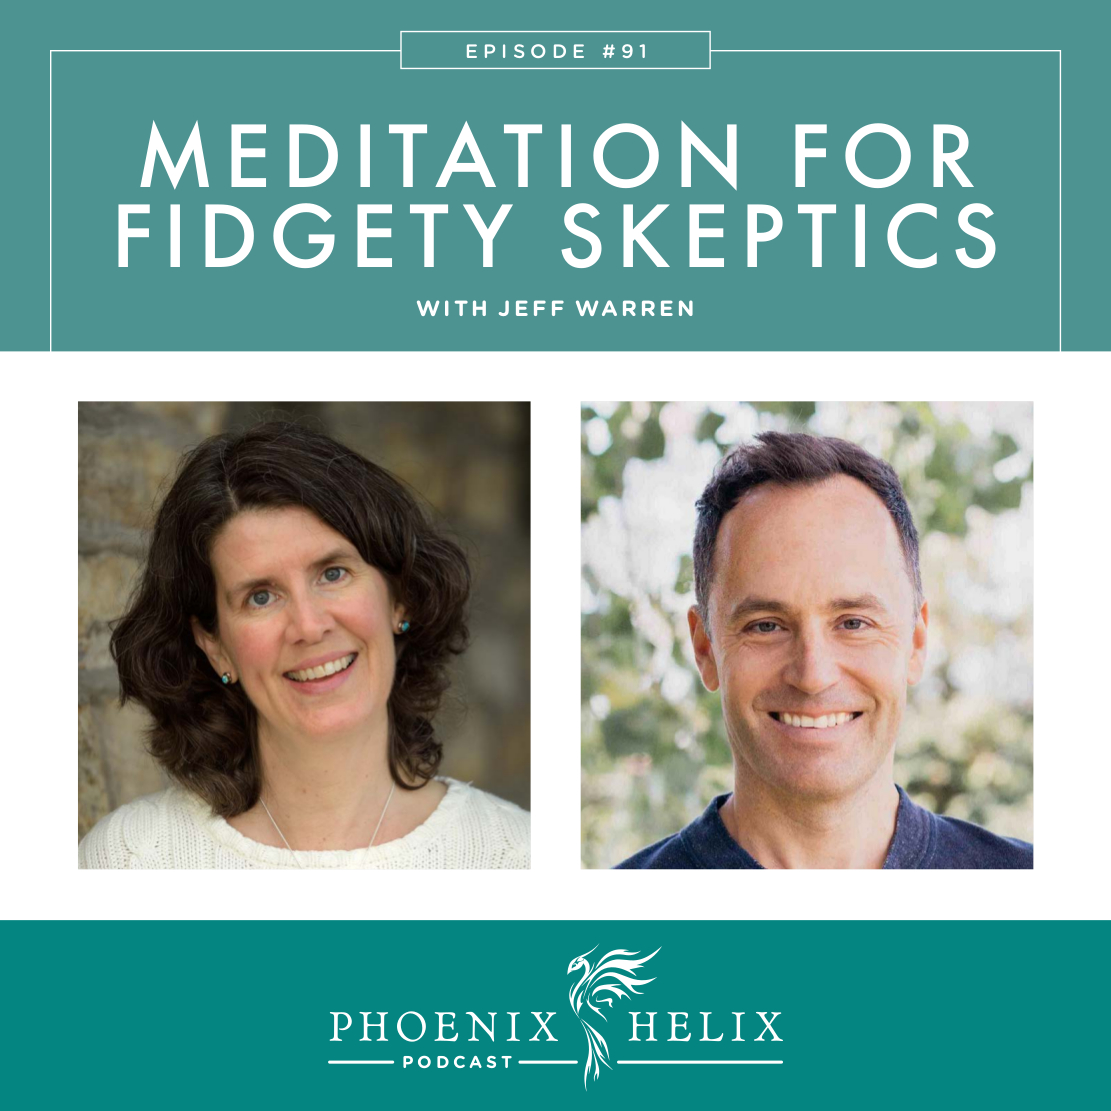 Meditation for Fidgety Skeptics with Jeff Warren | Phoenix Helix Podcast